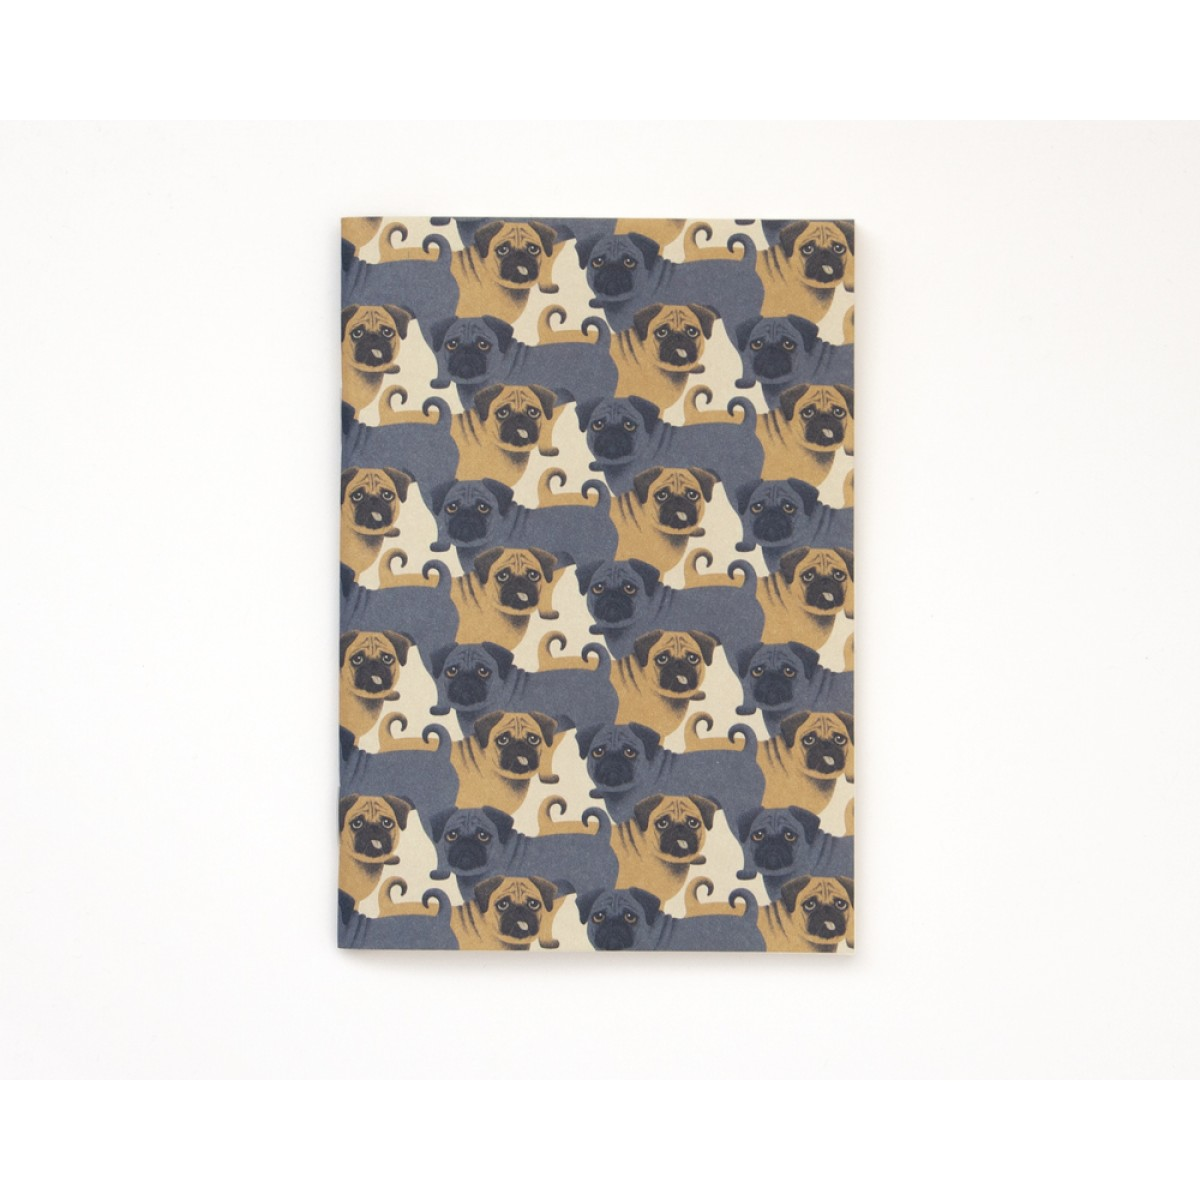 Notizheft A6 Psychedelic pugs // Papaya paper products